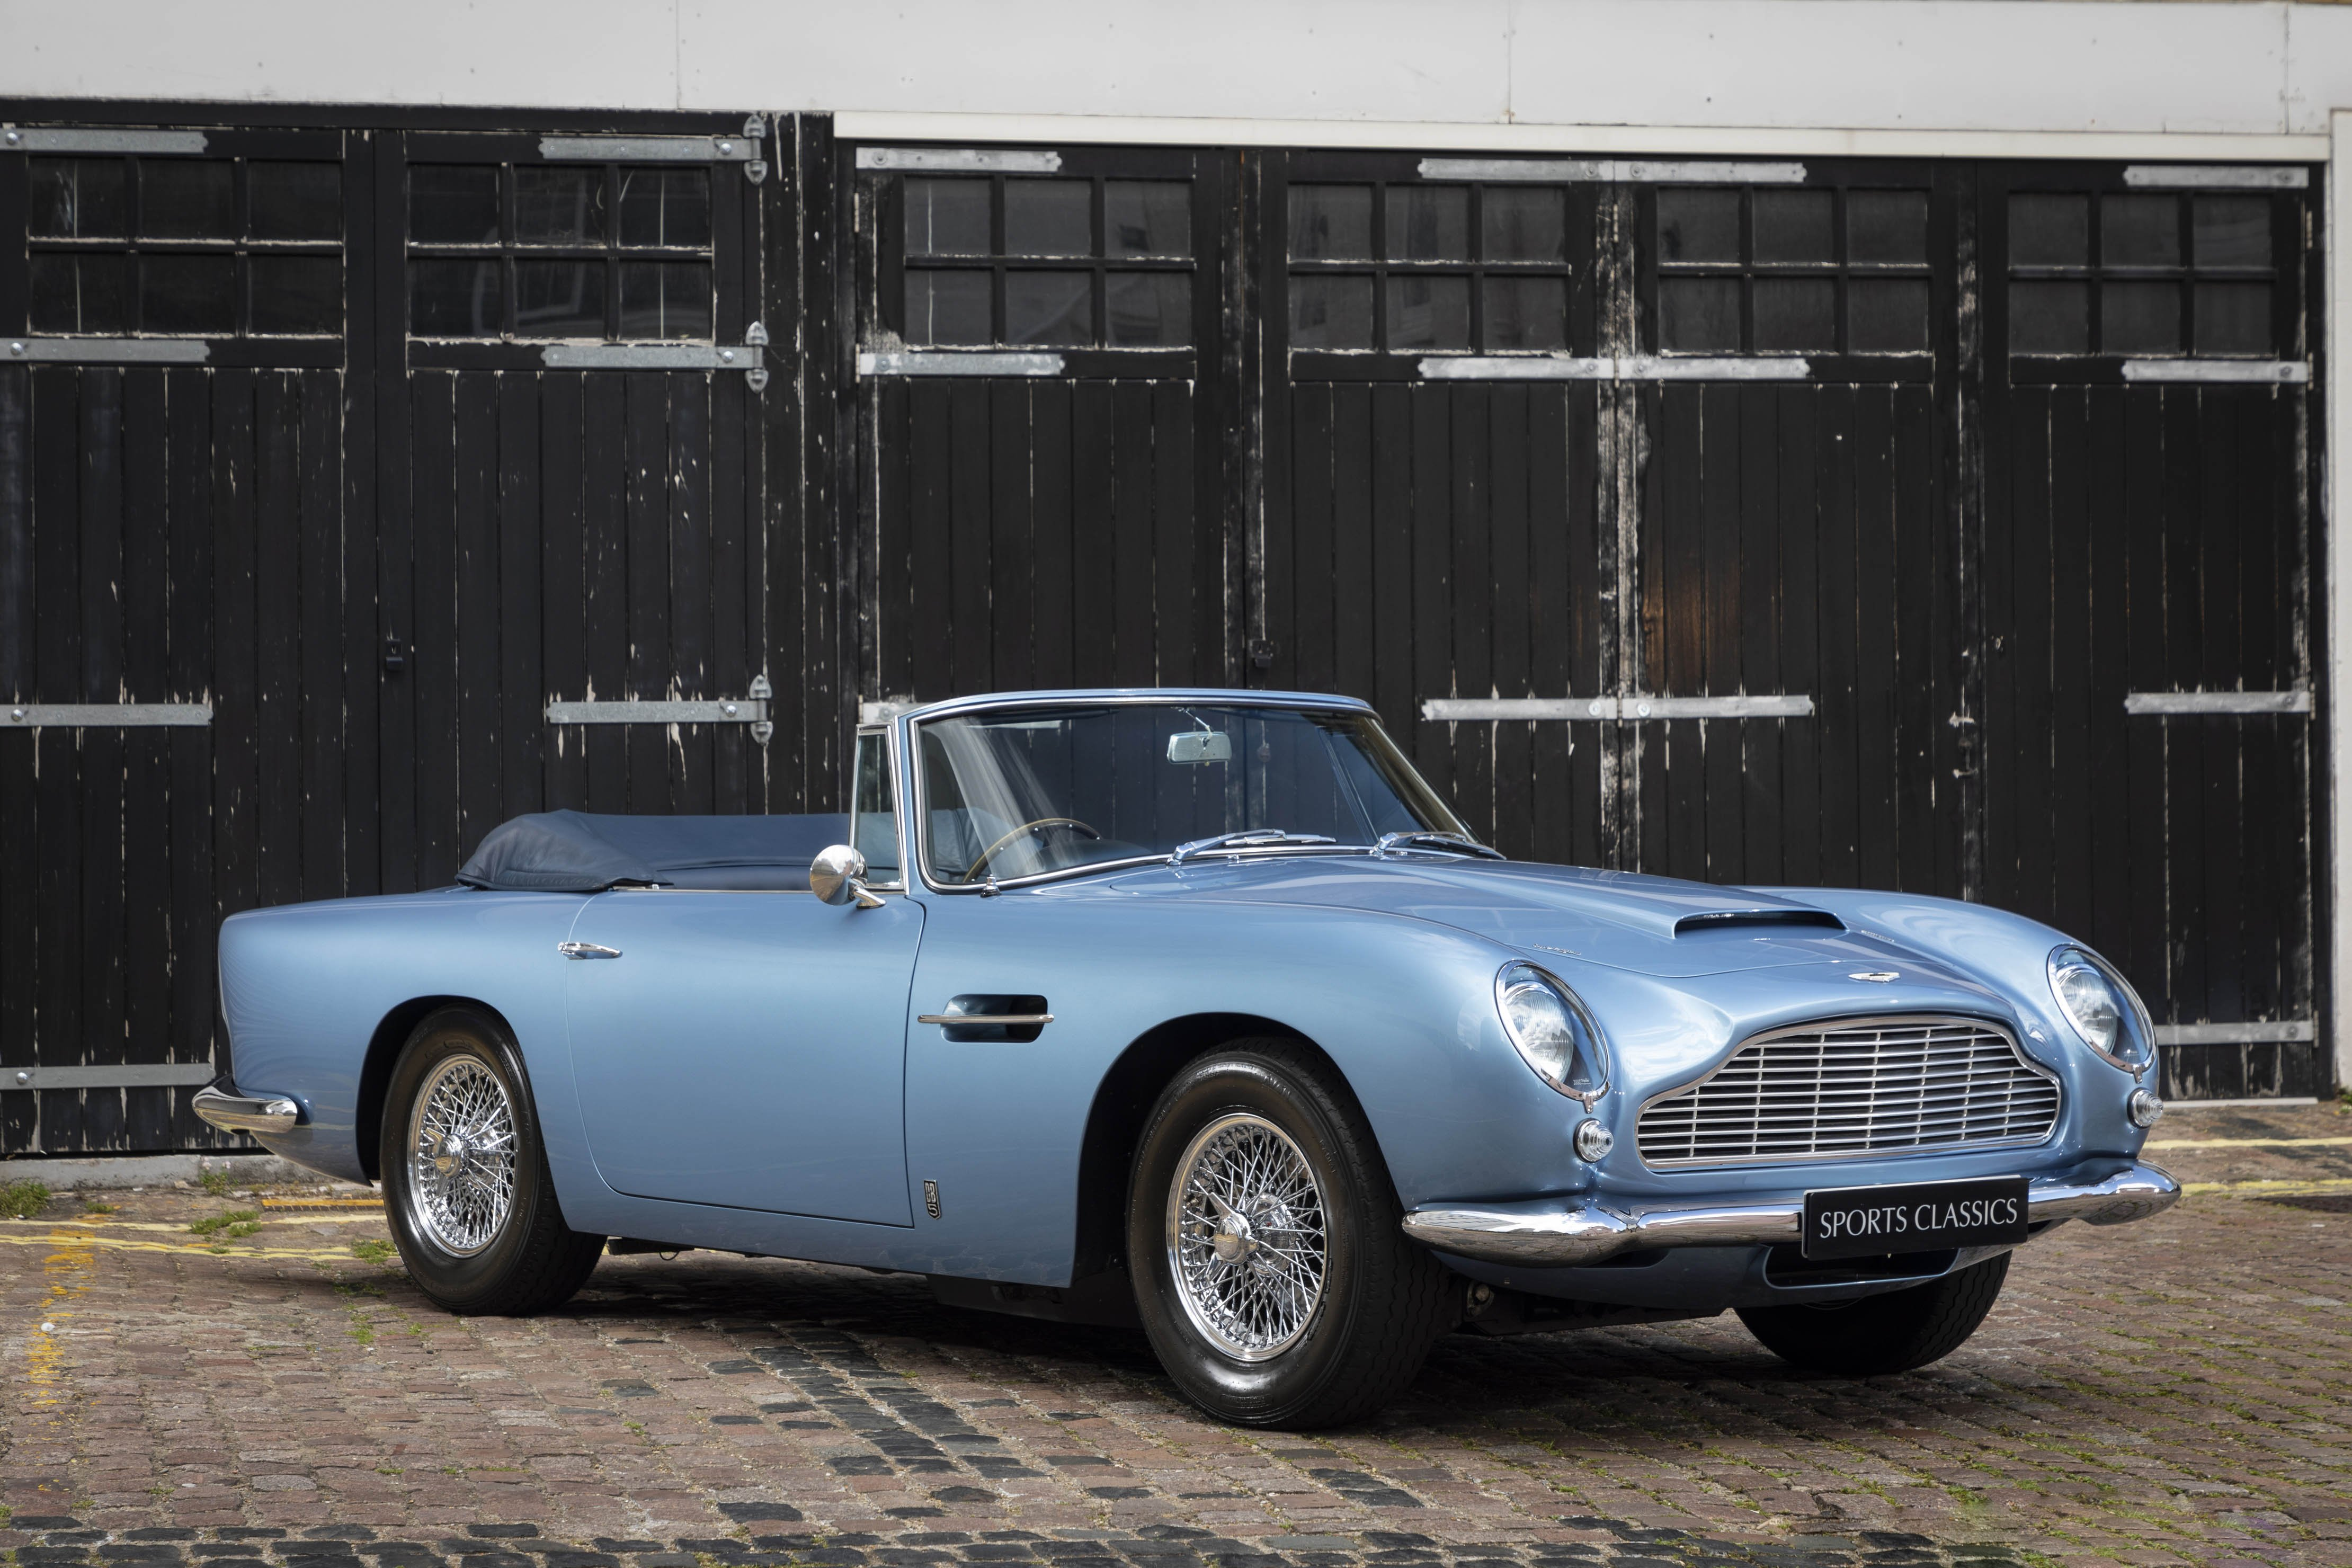 1965 Aston Martin Db5 Convertible 100 Point Body Off Restoration In 2013 Just 1 Of Only 85 Right Hand Drive Cars Produced Classic Driver Market